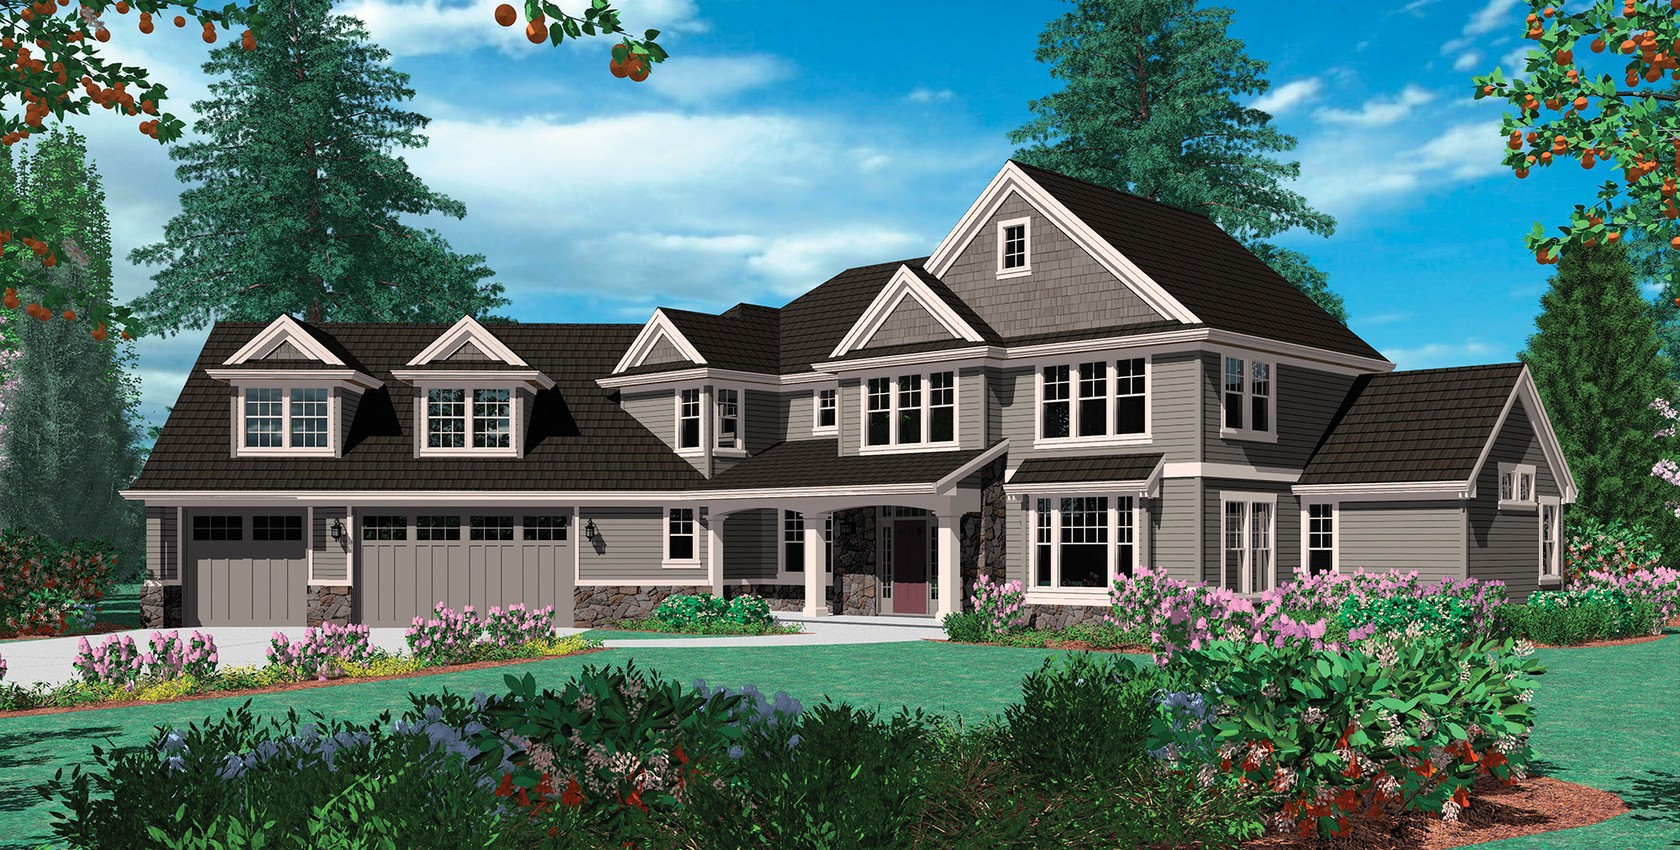 Mascord house plan 2346 the kaiser for House plans with great room in front